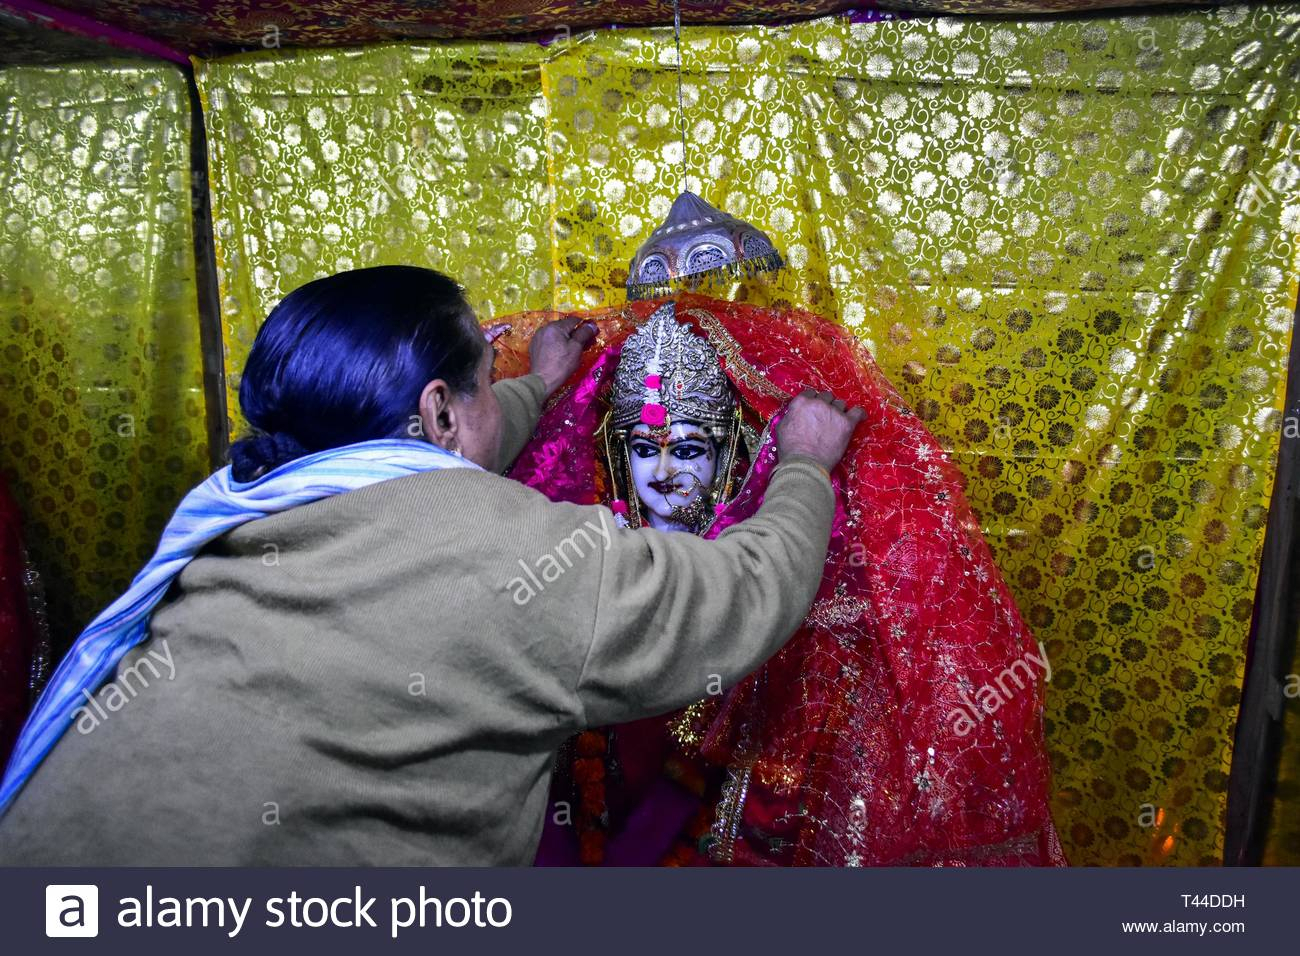 A Devotee Seen Performing Rituals During The Occasion. The within Om Lunar Calendar